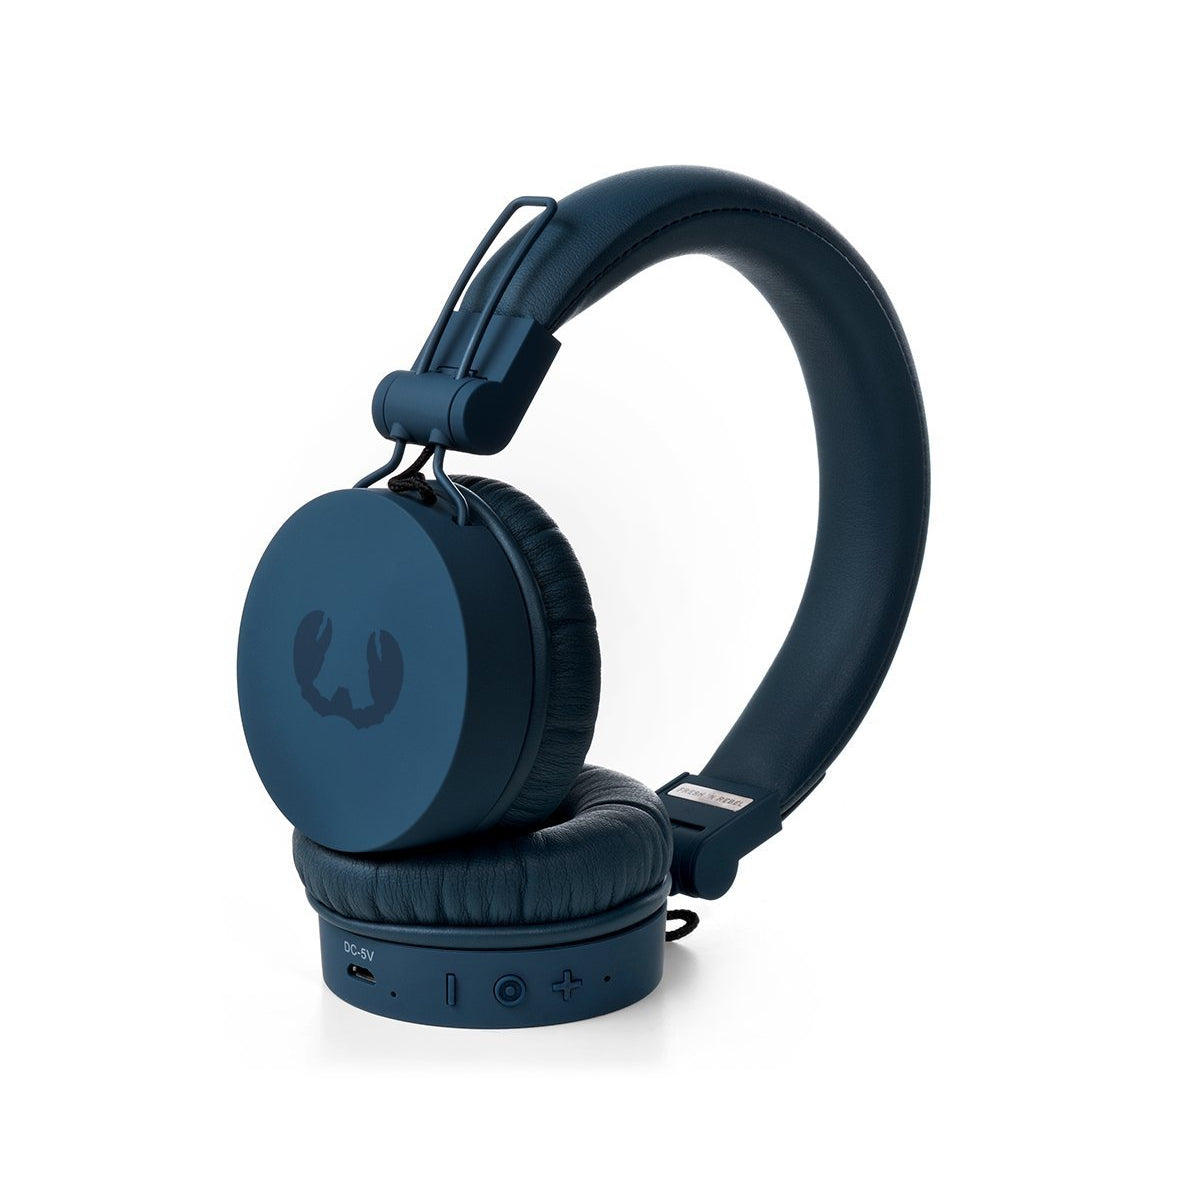 Fresh 'n Rebel CAPS WIRELESS Headphones - Indigo [Accessories]